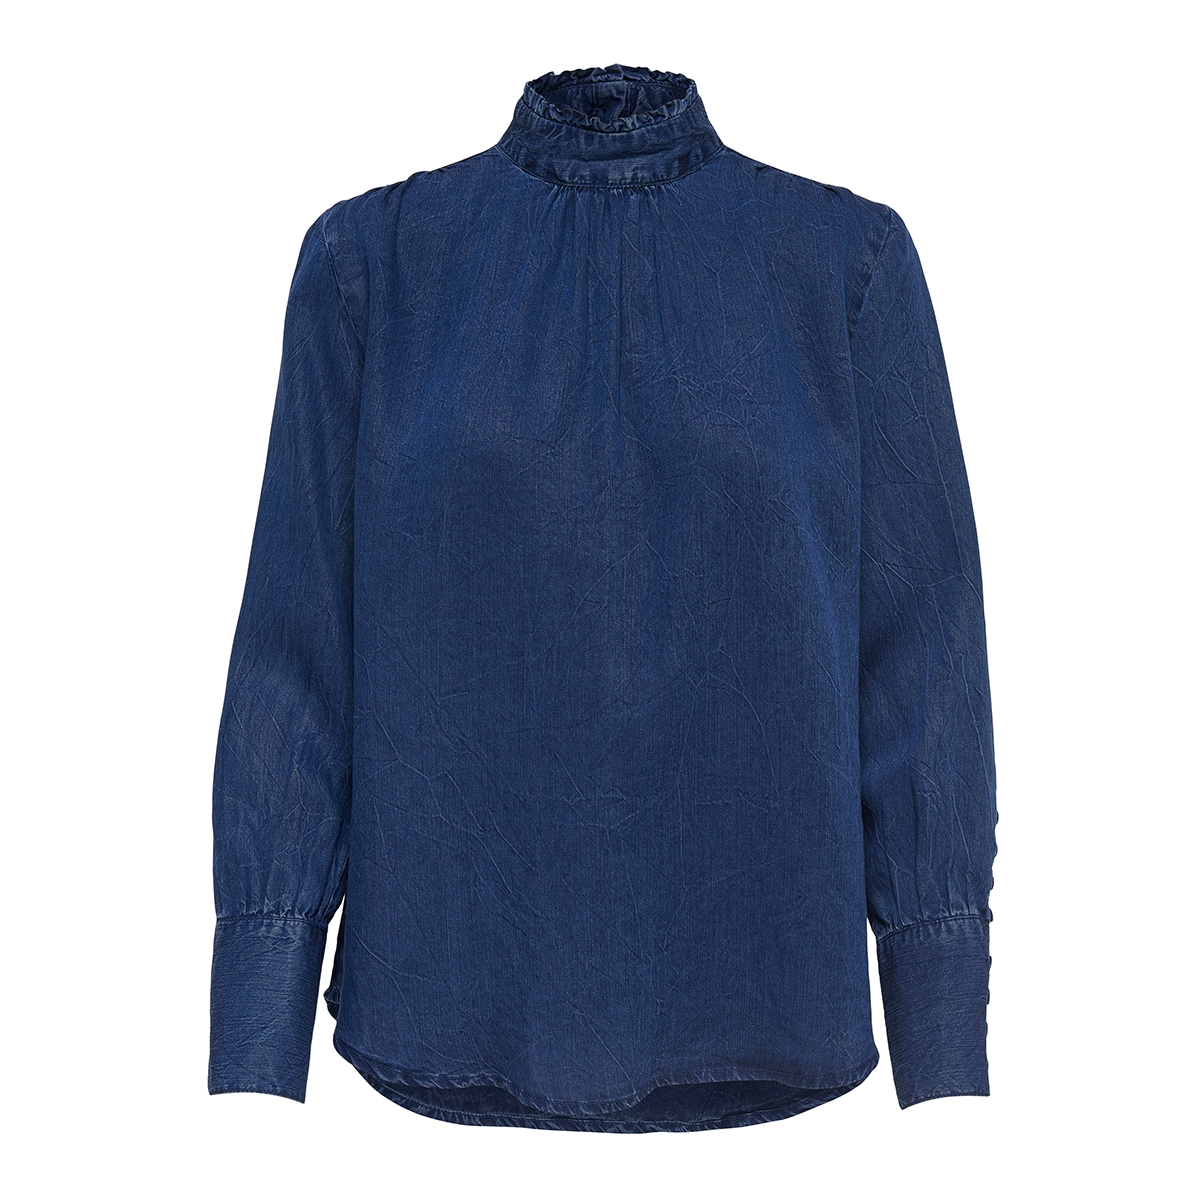 onljosie high neck l/s blouse dnm 15158810 only blouse dark blue denim